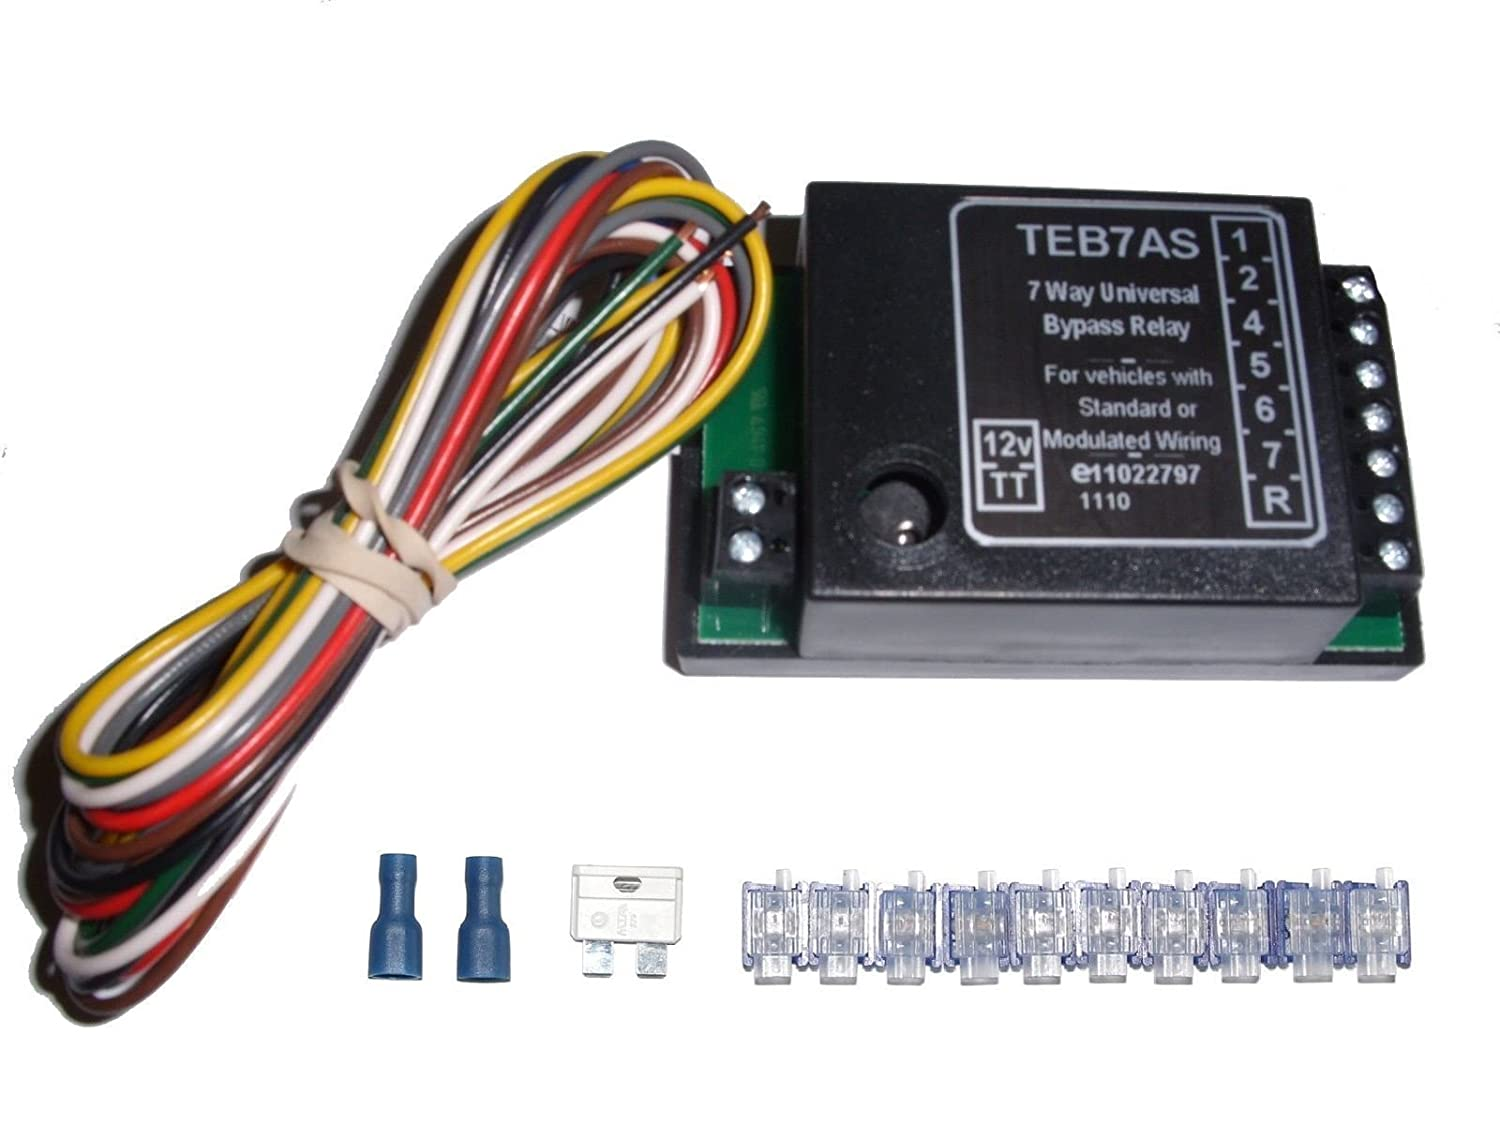 Universal 7 Way Bypass Relay Towing Electrics Towbar Wiring Kit Utrelayaccspzmuk1 Car Motorbike